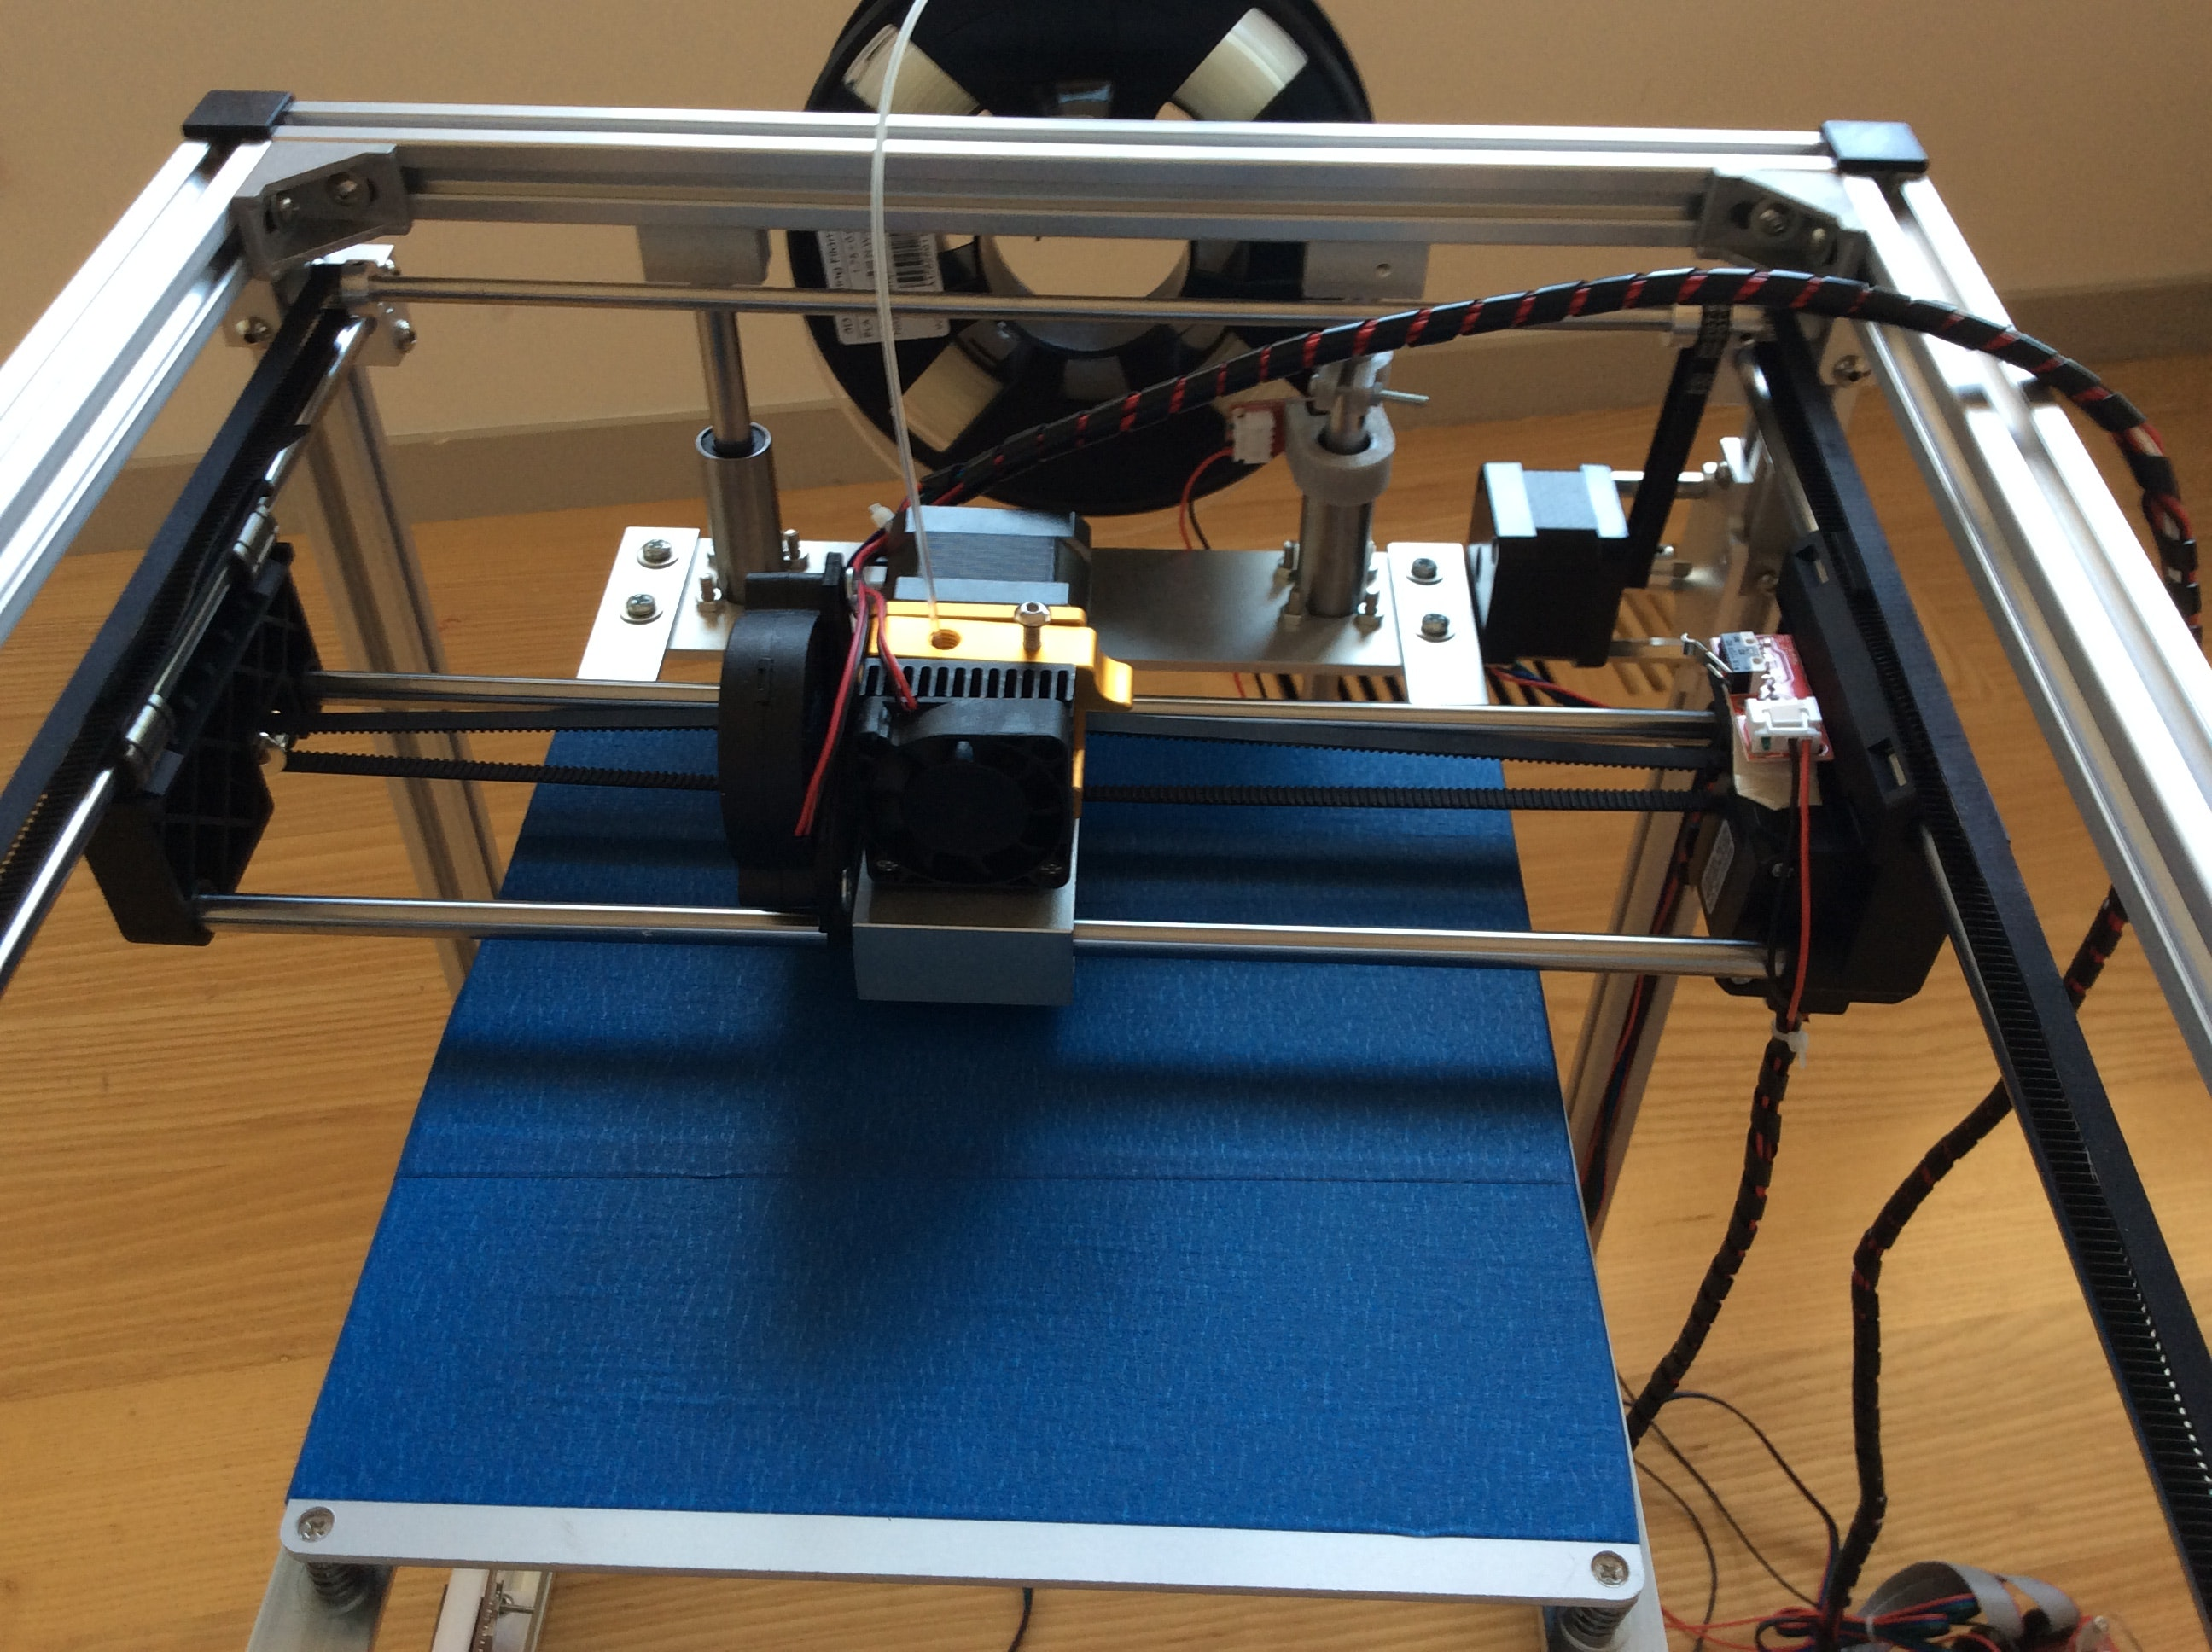 img_0006_Bbj4F8TP4w?auto=compress%2Cformat&w=680&h=510&fit=max the arduino 3d printer, flyingbear p902 arduino project hub  at reclaimingppi.co